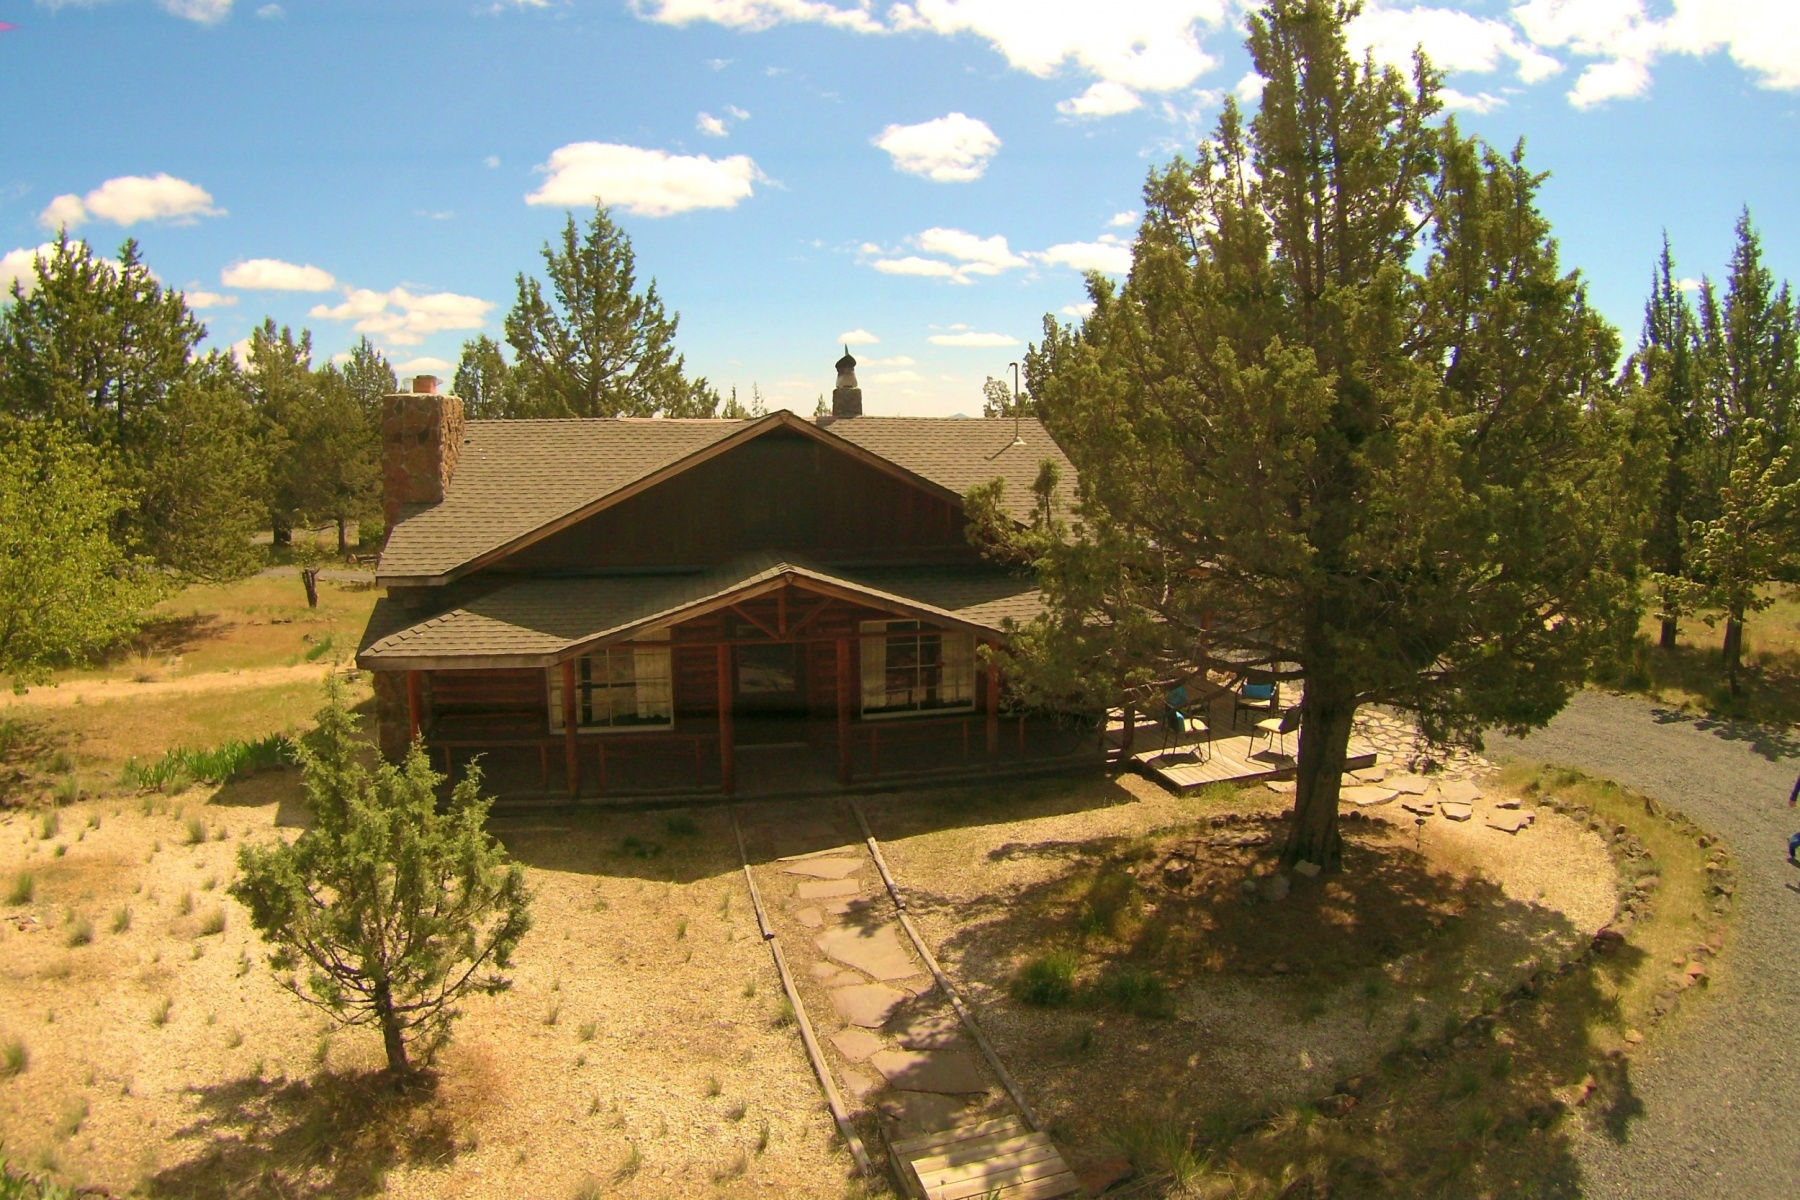 Maison unifamiliale pour l Vente à Lake Billy Chinook Log Cabin w/ Pvt Lake Access 6212 SW Prospect View Dr Culver, Oregon 97734 États-Unis